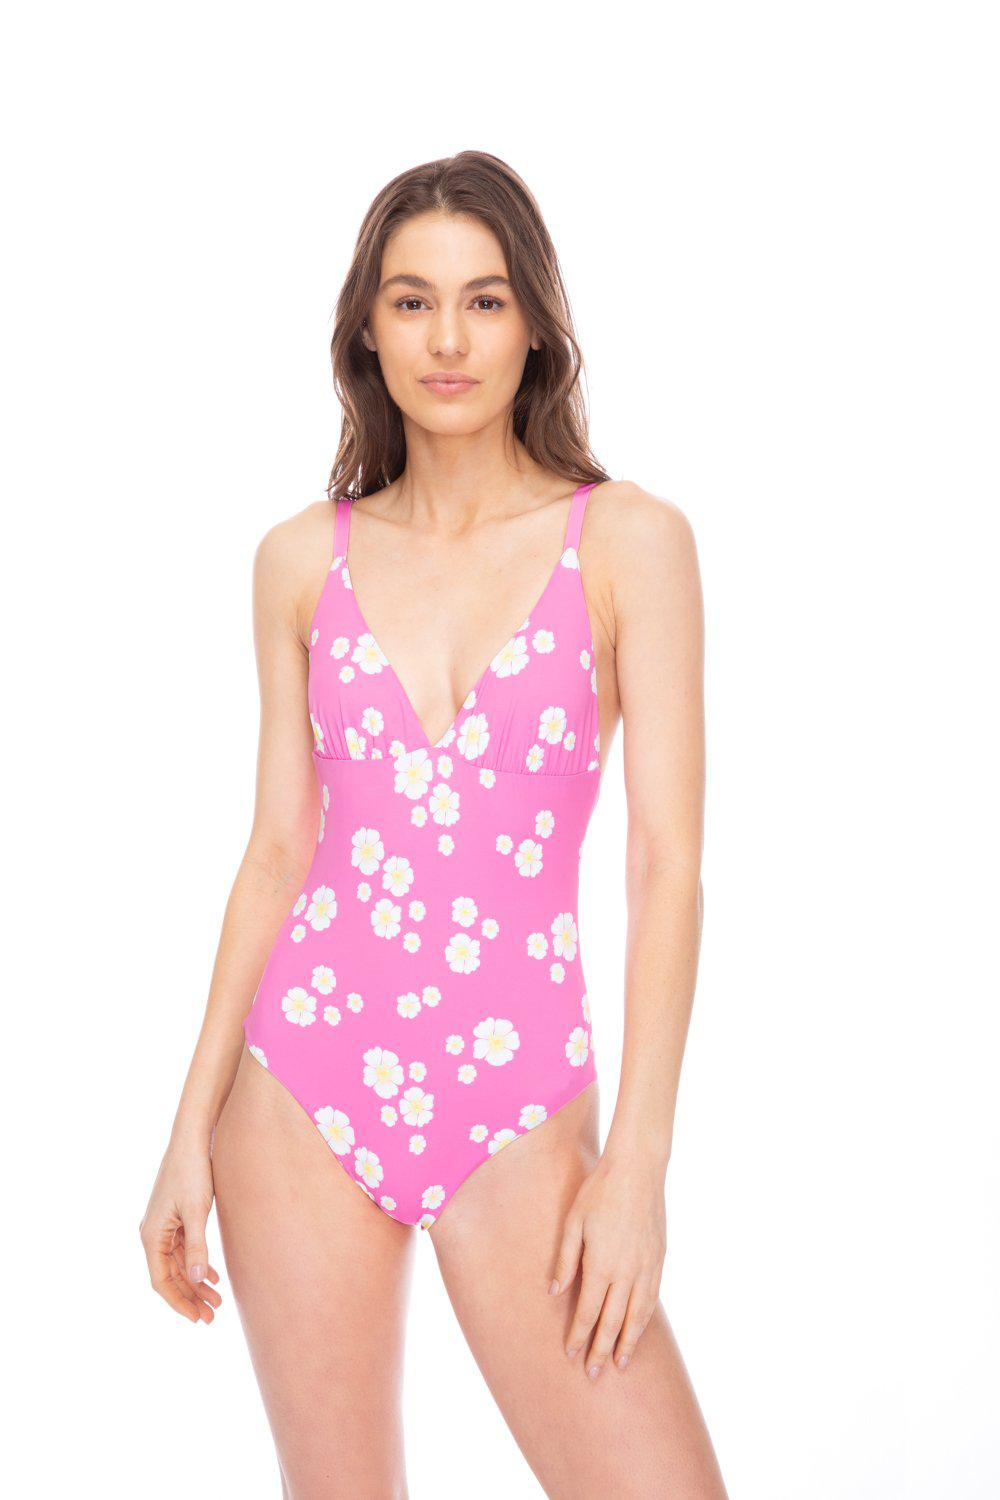 CATHERINE FLORAL PINK